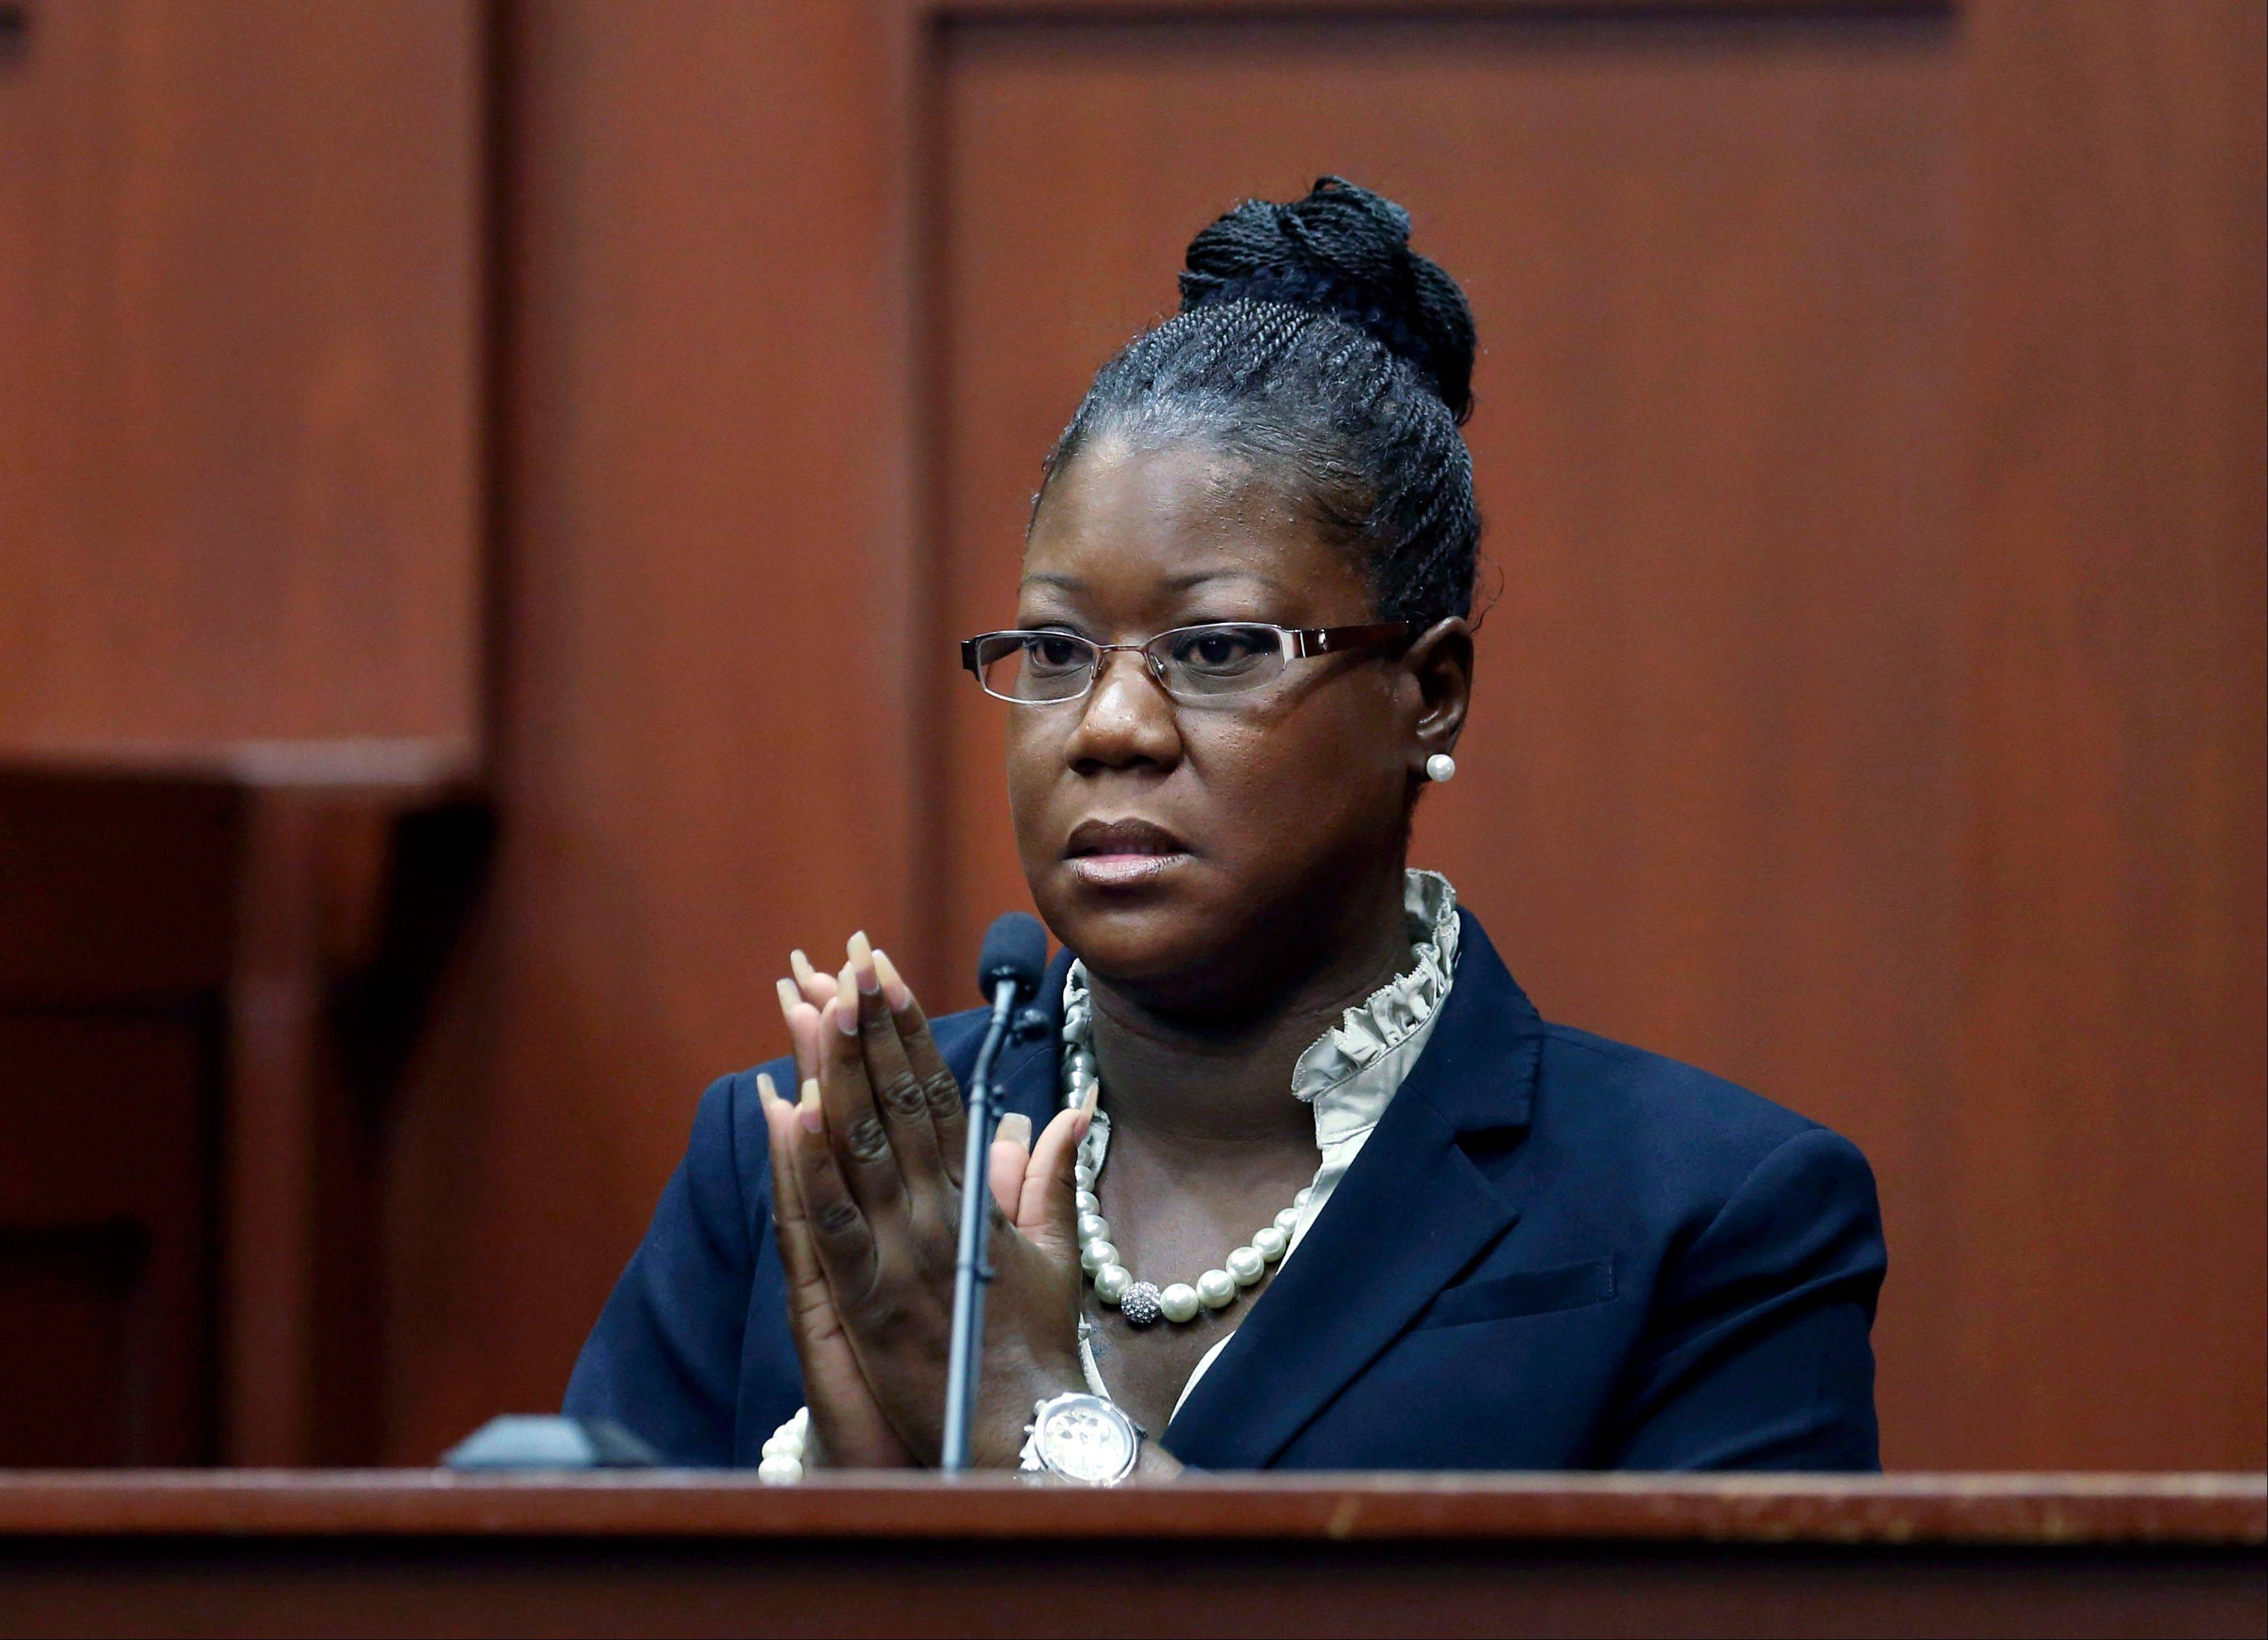 Trayvon Martin's mother, Sybrina Fulton, takes the stand during George Zimmerman's trial in Seminole County circuit court, Friday, July 5, 2013, in Sanford, Fla. Zimmerman has been charged with second-degree murder for the 2012 shooting death of Trayvon Martin. (AP Photo/Orlando Sentinel, Gary W. Green, Pool)